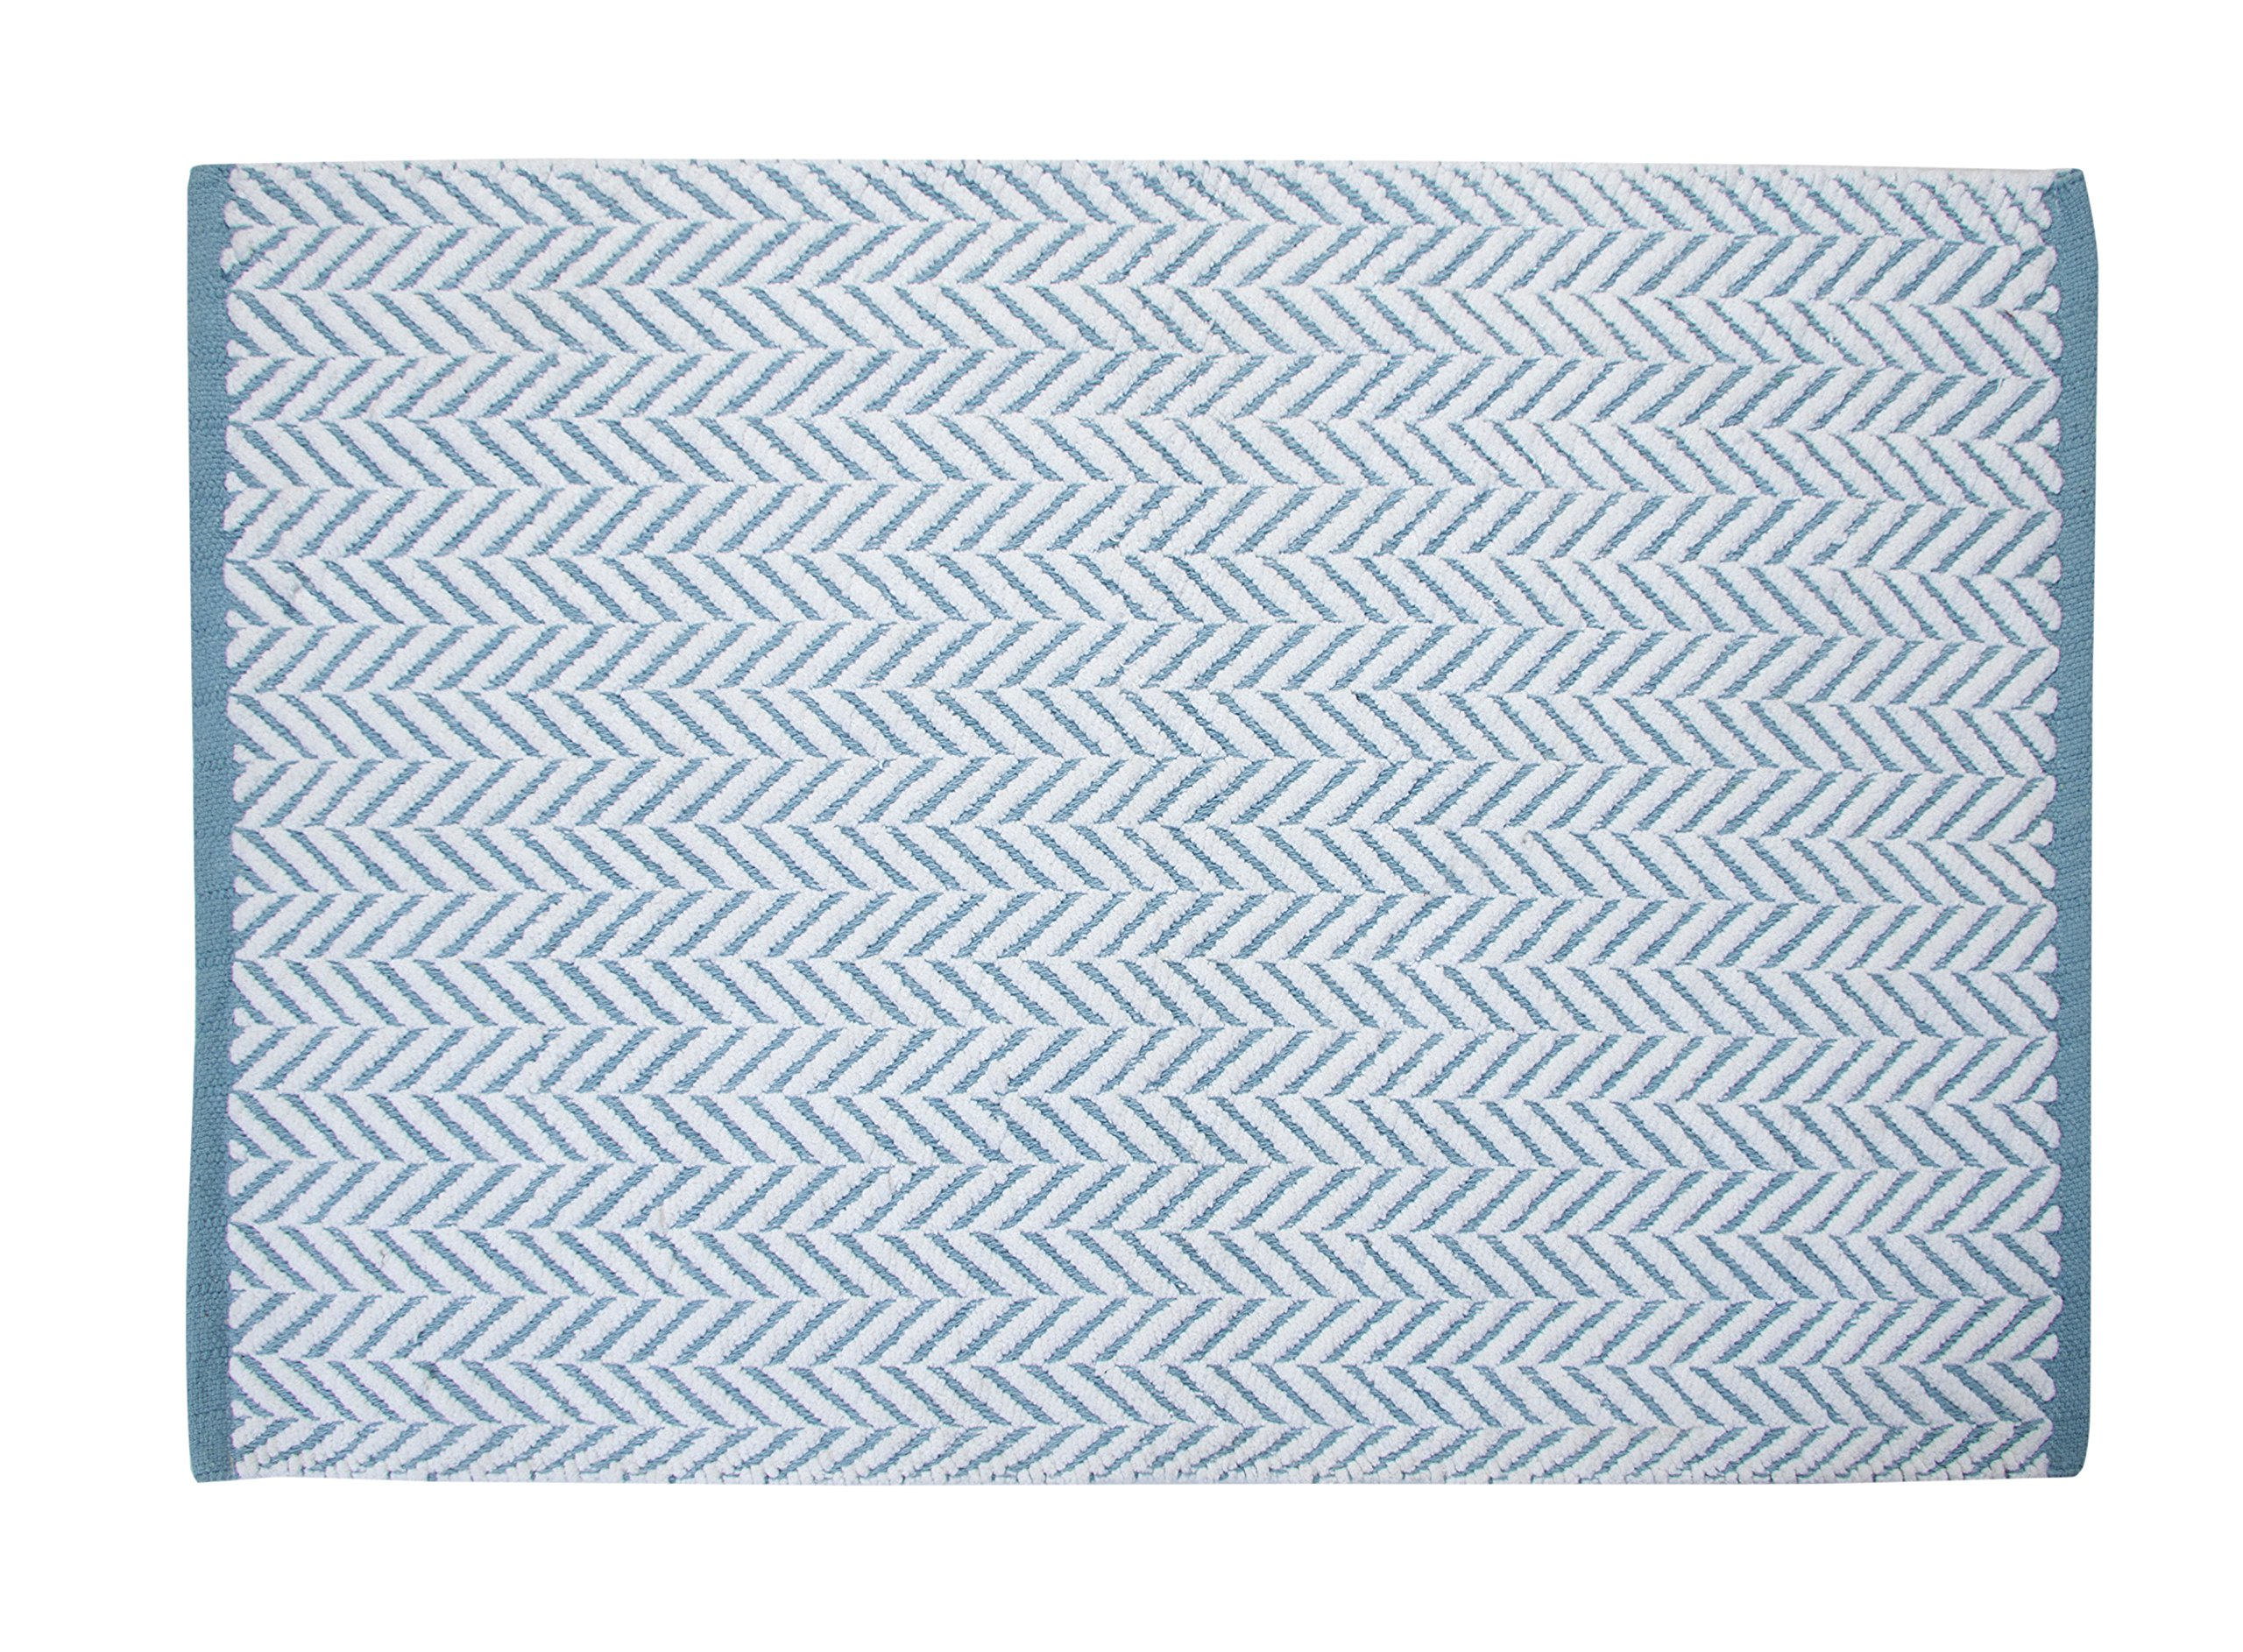 Bath Rug - Saffron Fabs 100% Cotton, tufted 50x30 Inches, Color White and Blue, GSF 145, Pattern Camridge